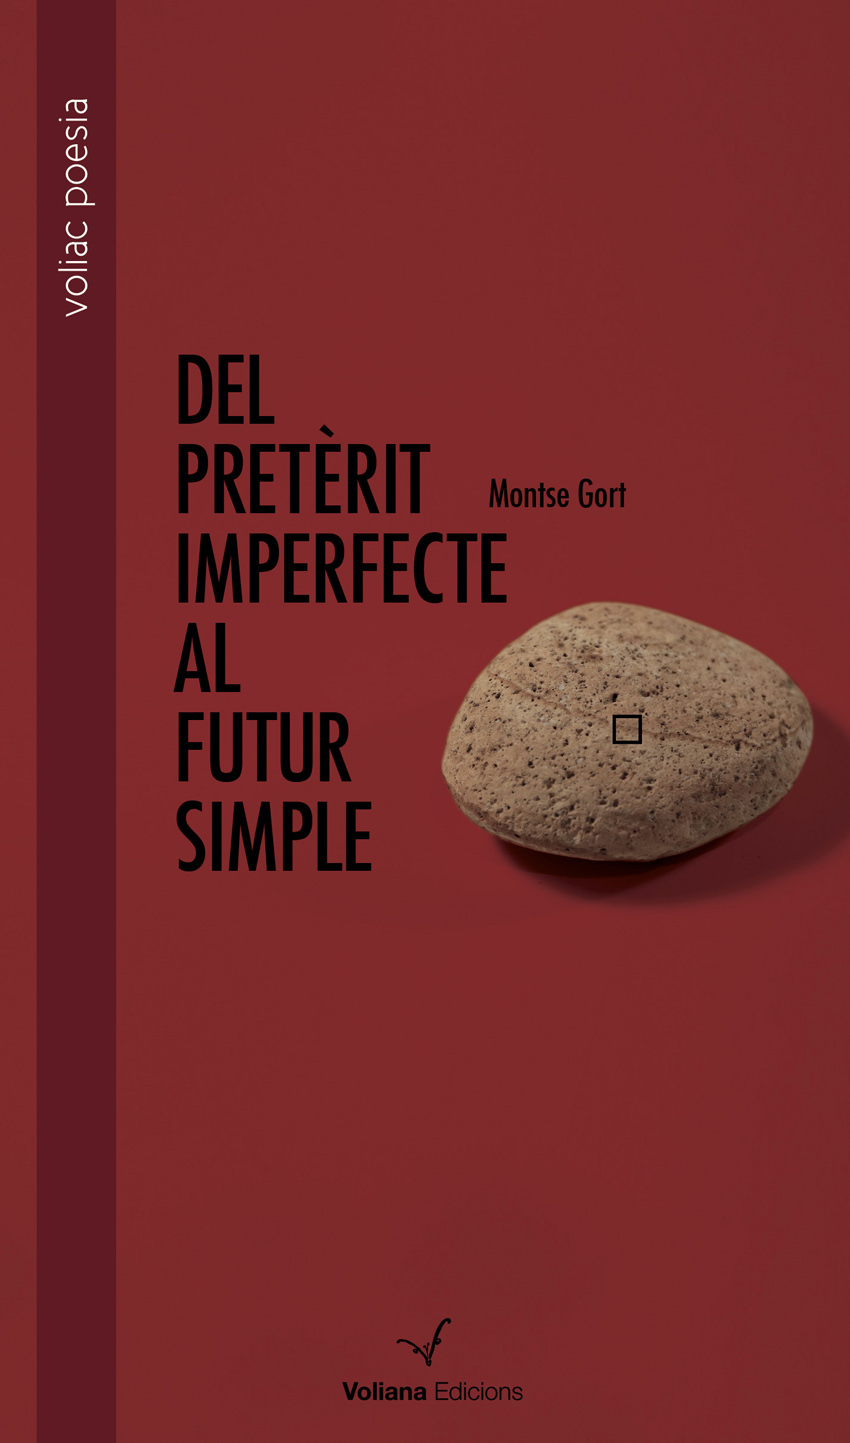 Del Preterit Imperfecte Al Futur Simple. Mont